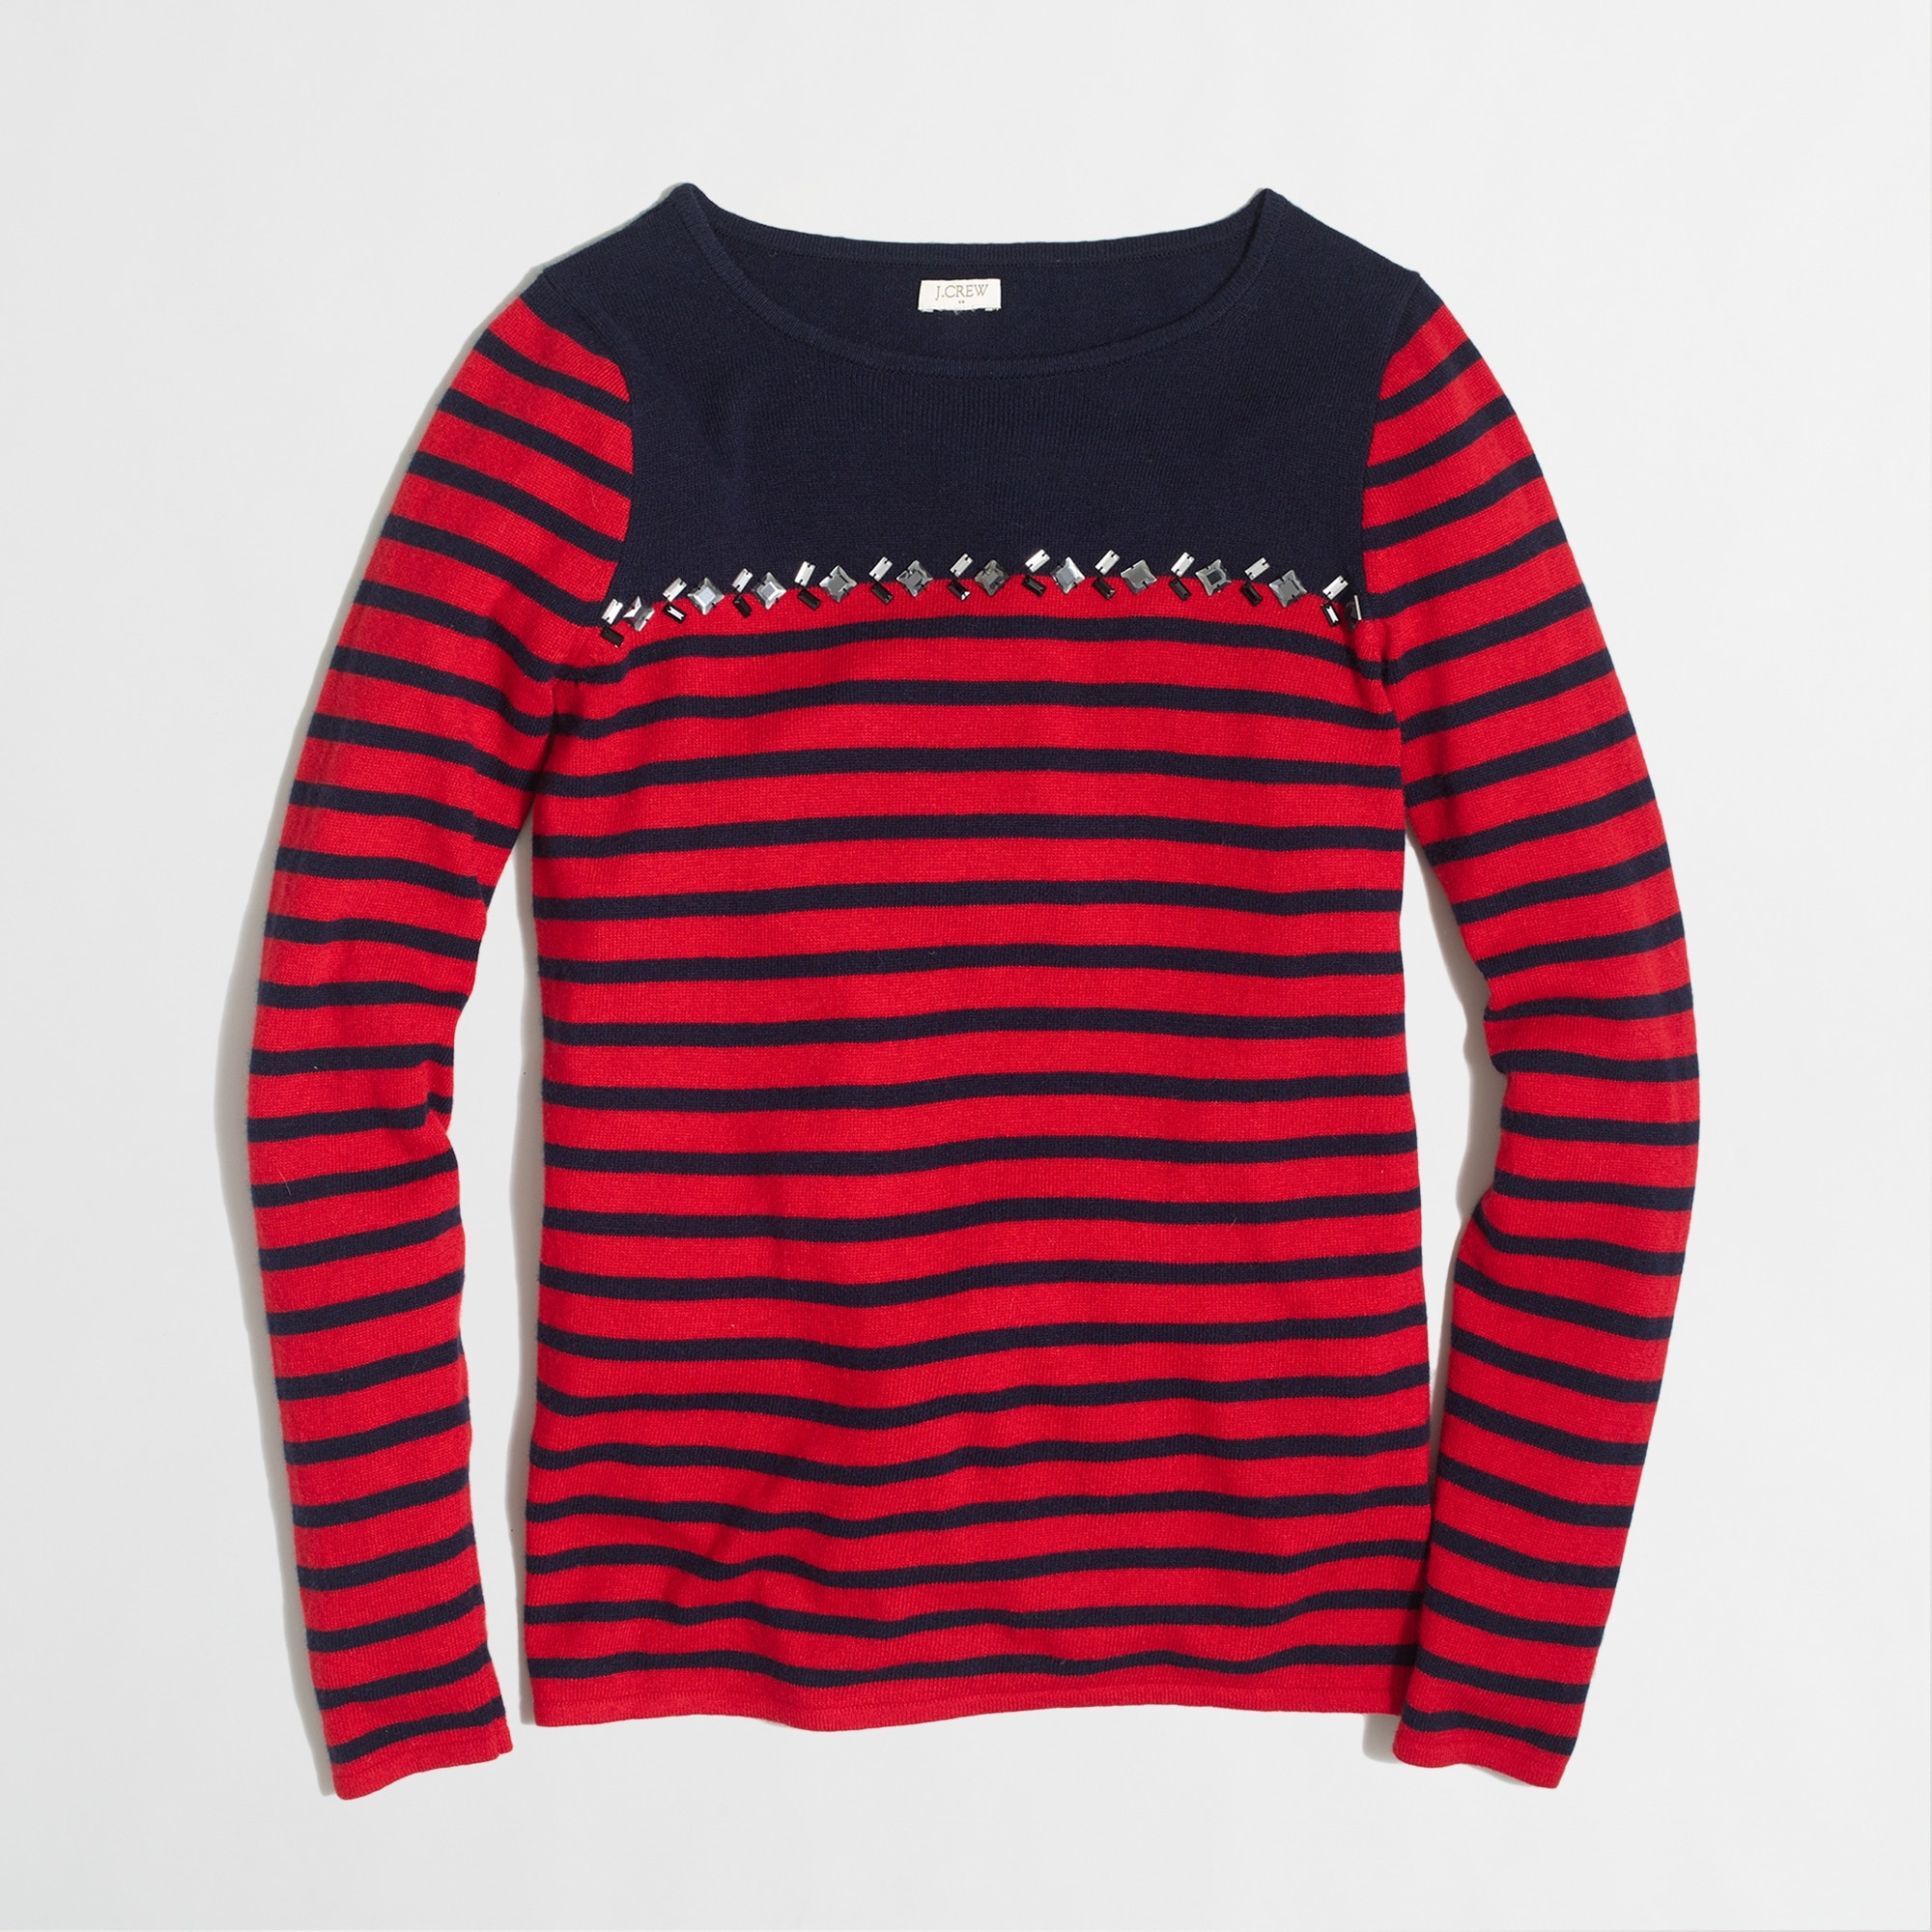 breton-striped sweater with gems : factorywomen pullovers